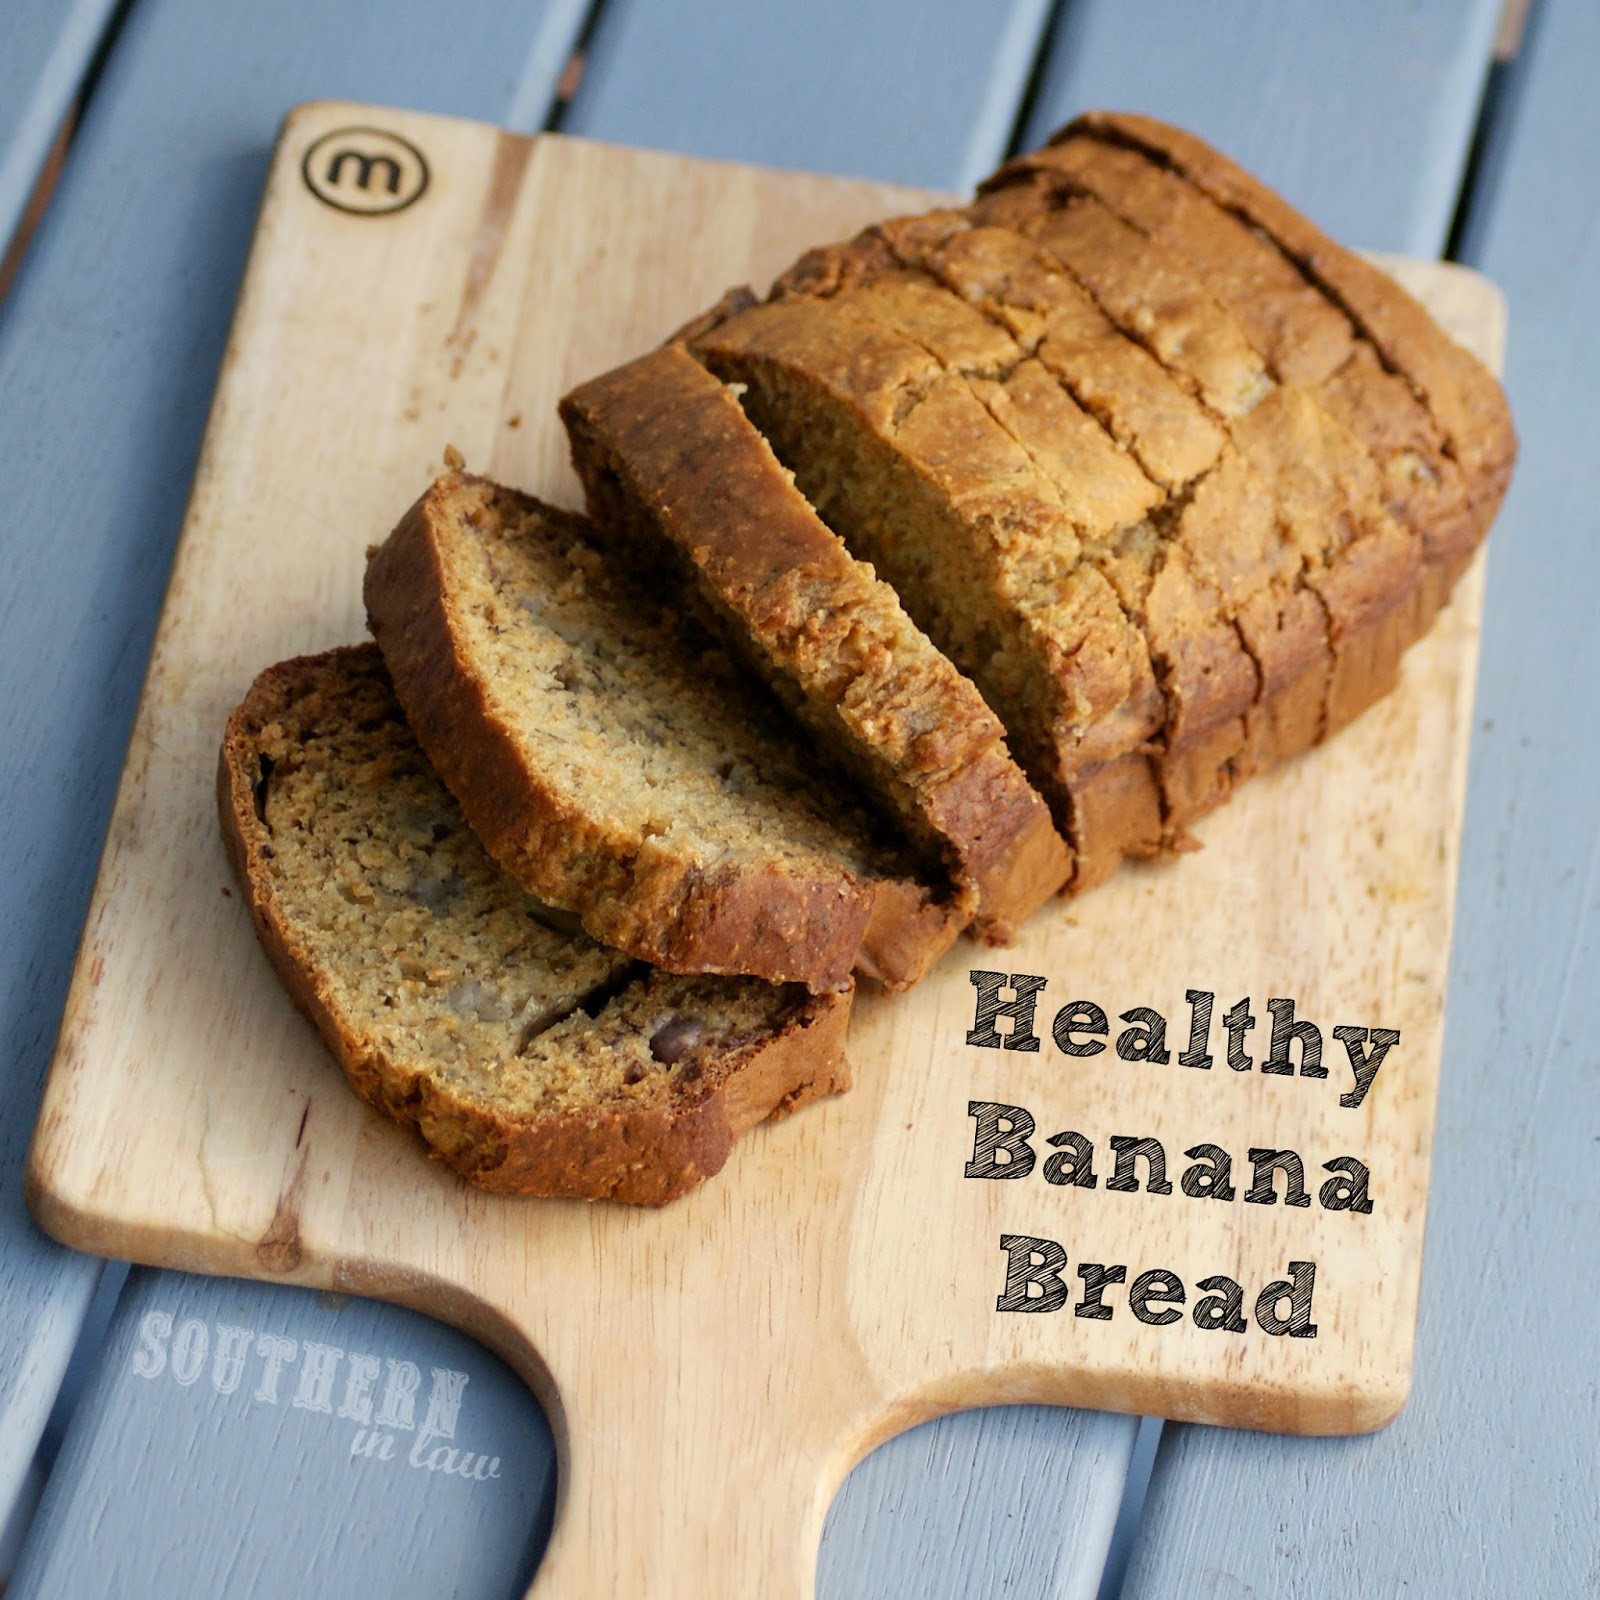 Healthy Bread Recipes  Southern In Law Recipe Healthy Banana Bread